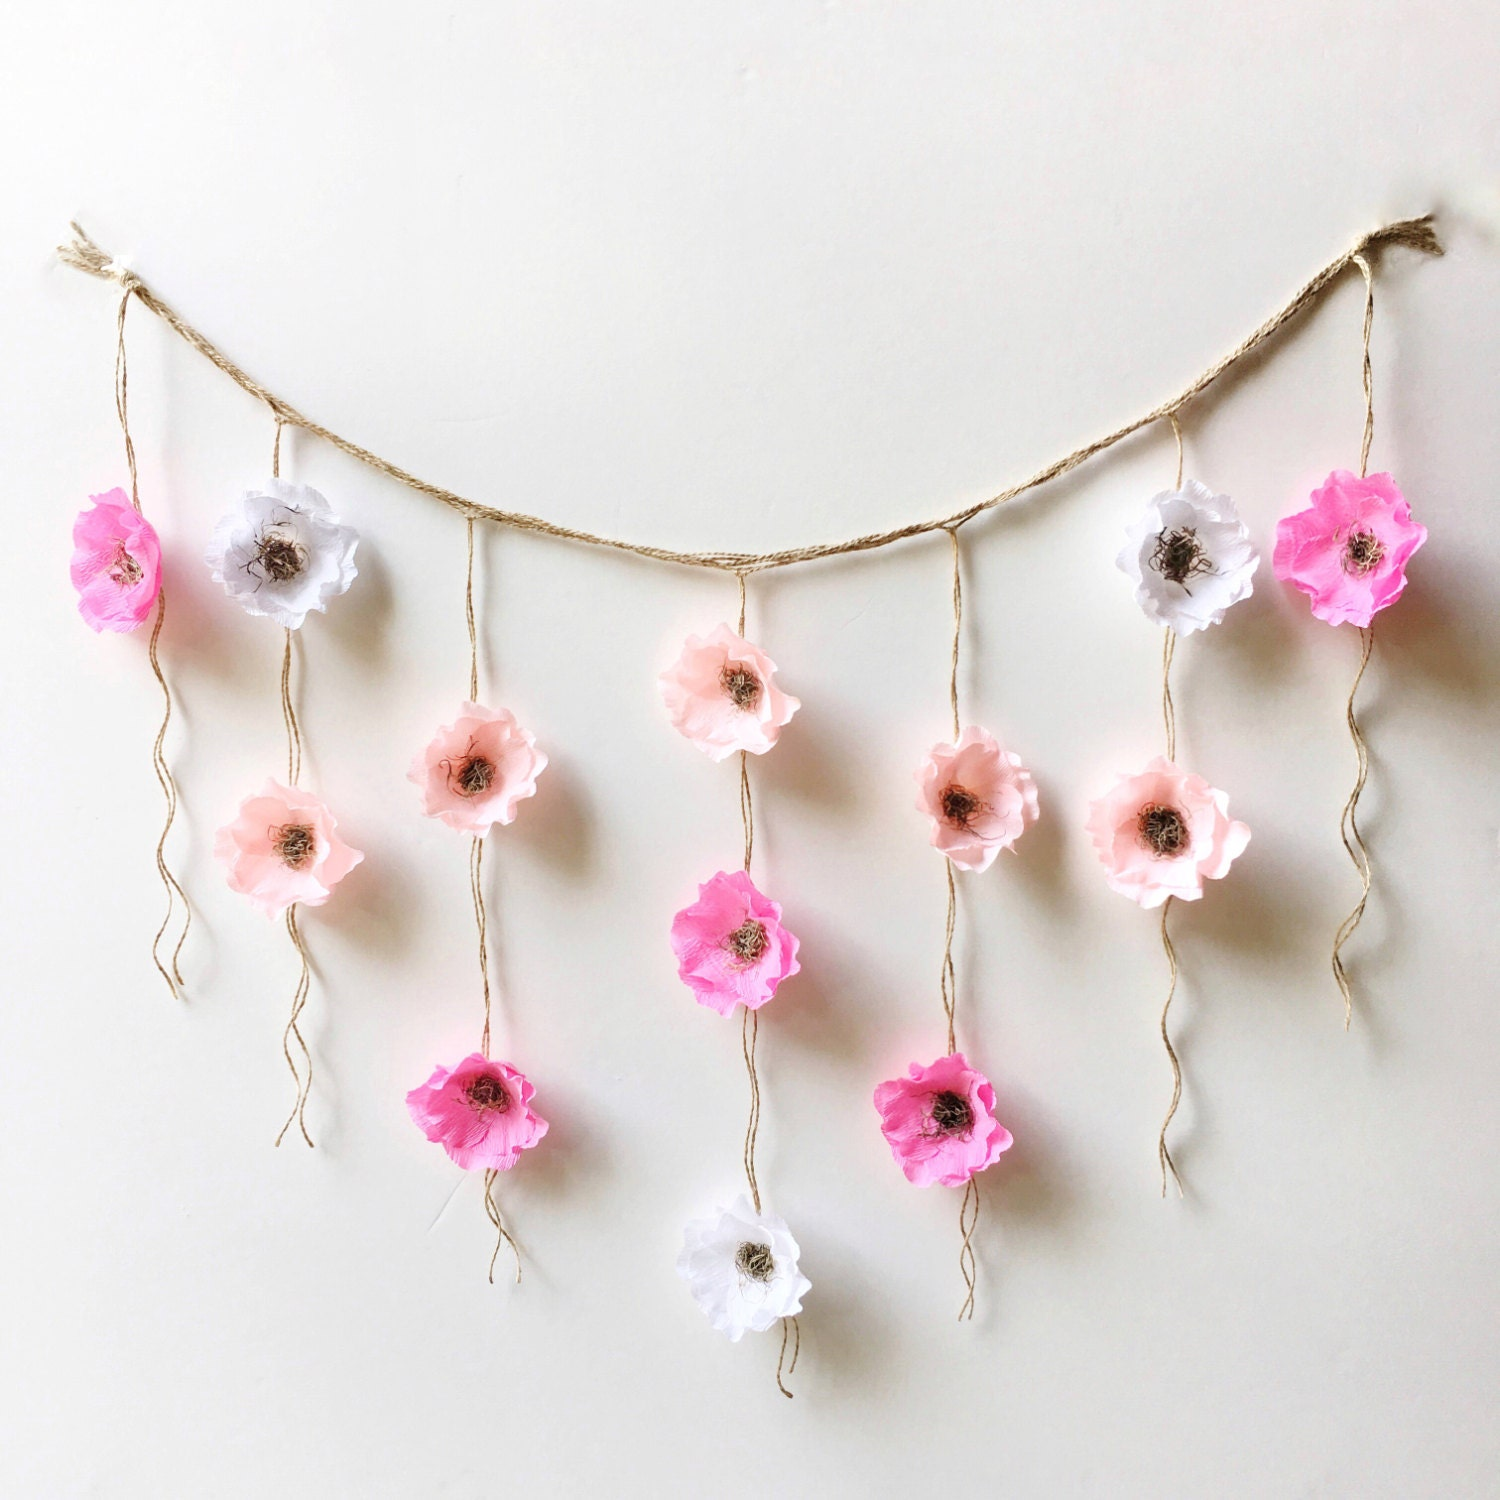 Flower wall decor images